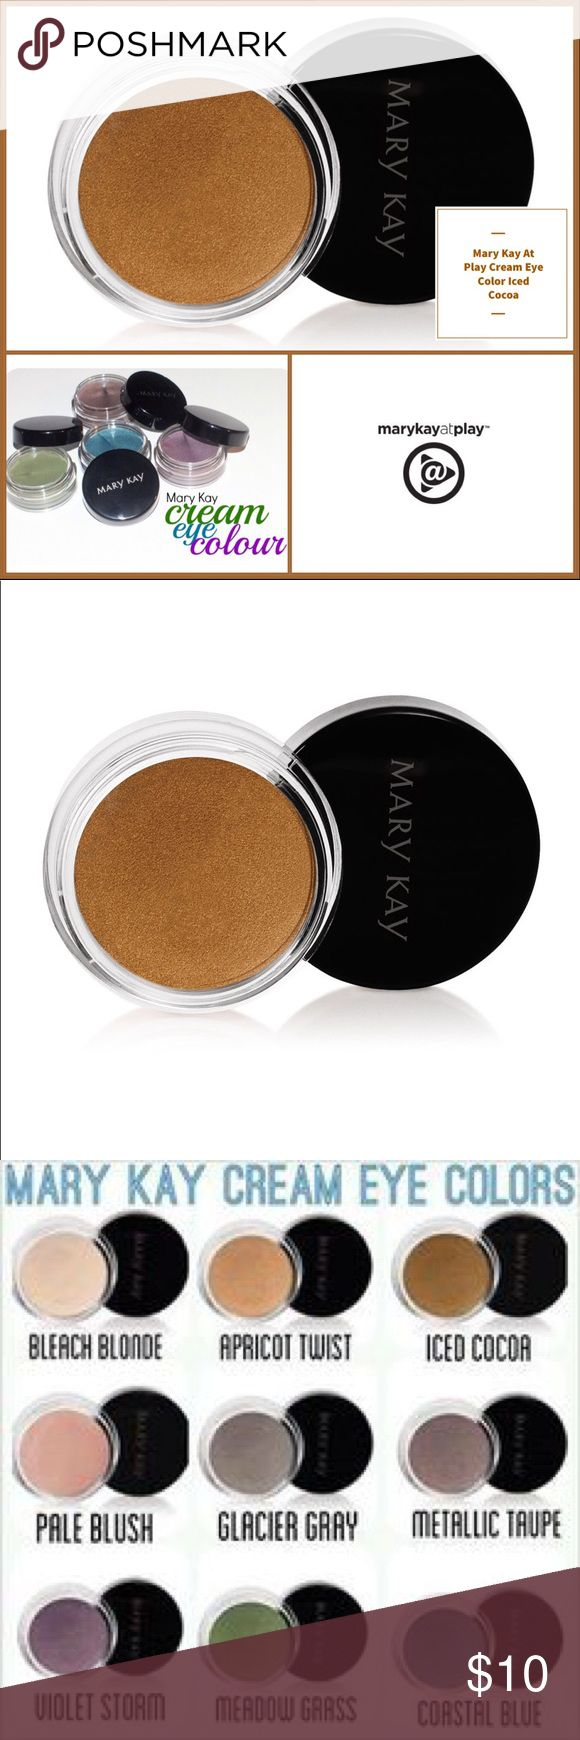 🆕 Mary Kay Cream Eye Color Iced Cocoa 🆕 Mary Kay Cream Eye Color Iced Cocoa ▪️This soft, creamy, long-wearing formula glides on easily, lasts for 10 hours and can be applied in multiple layers to deliver more noticeable color while retaining a lightweight feel. ▪️Can be used alone or as a primer under mineral eye color. ▪️Dries quickly & does not transfer. ▪️Oil- and fragrance-free. ▪️Clinically tested for skin irritancy and allergy, suitable for sensitive skin and eyes. ▪️Note: In…